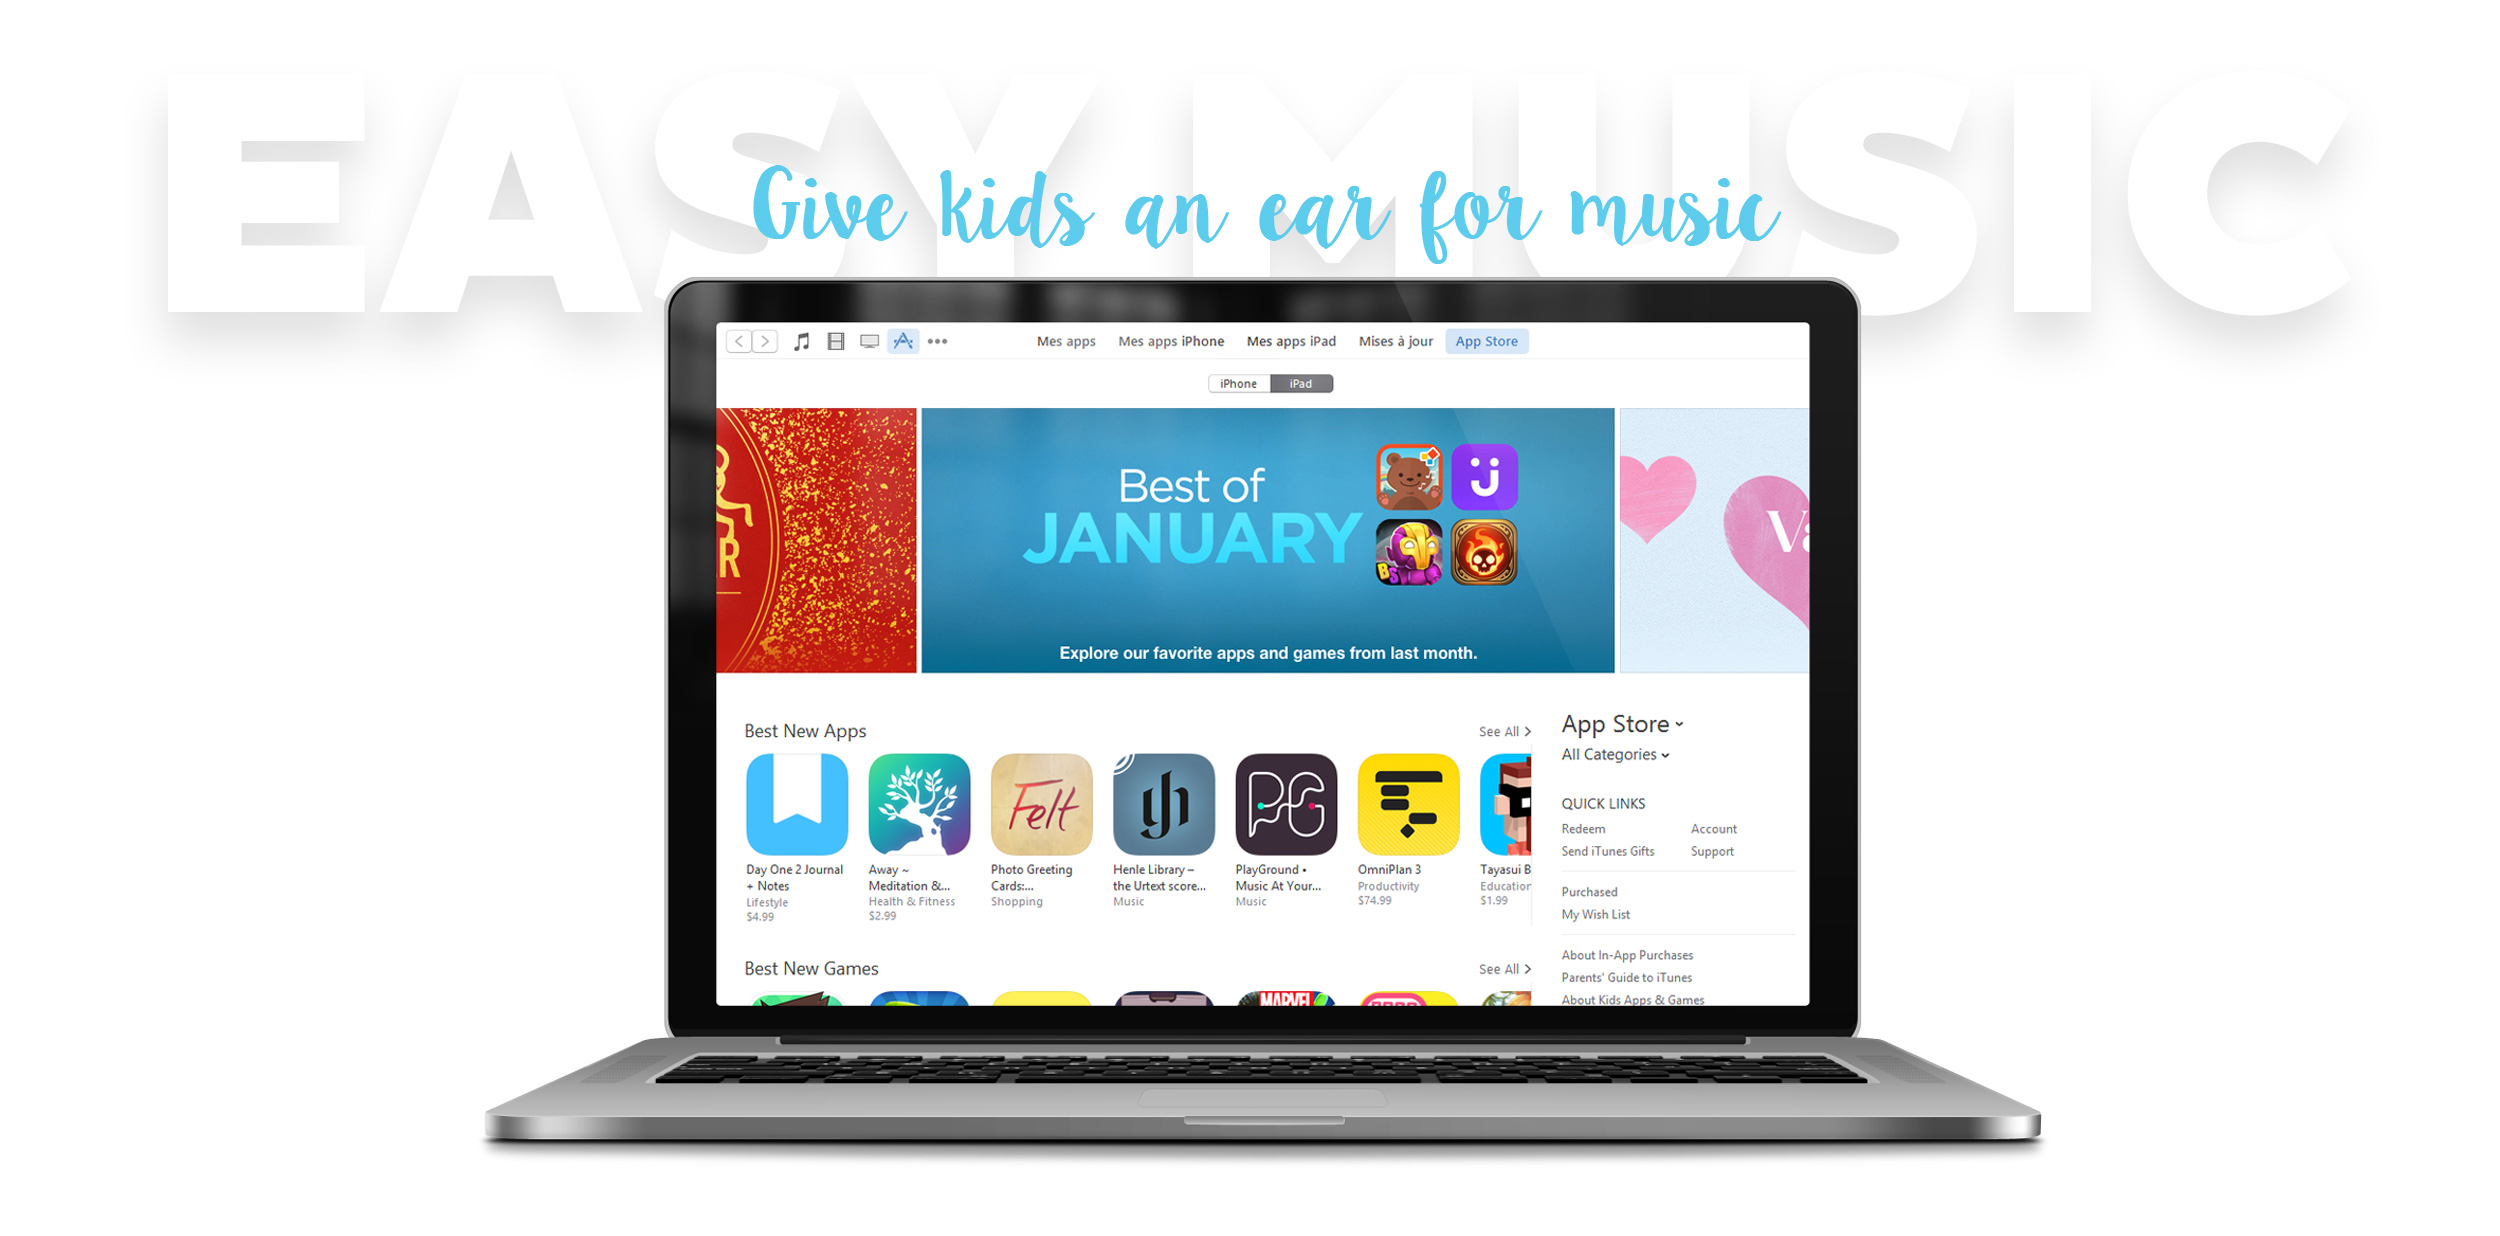 Easy Music App Edoki Millimade iTunes awards